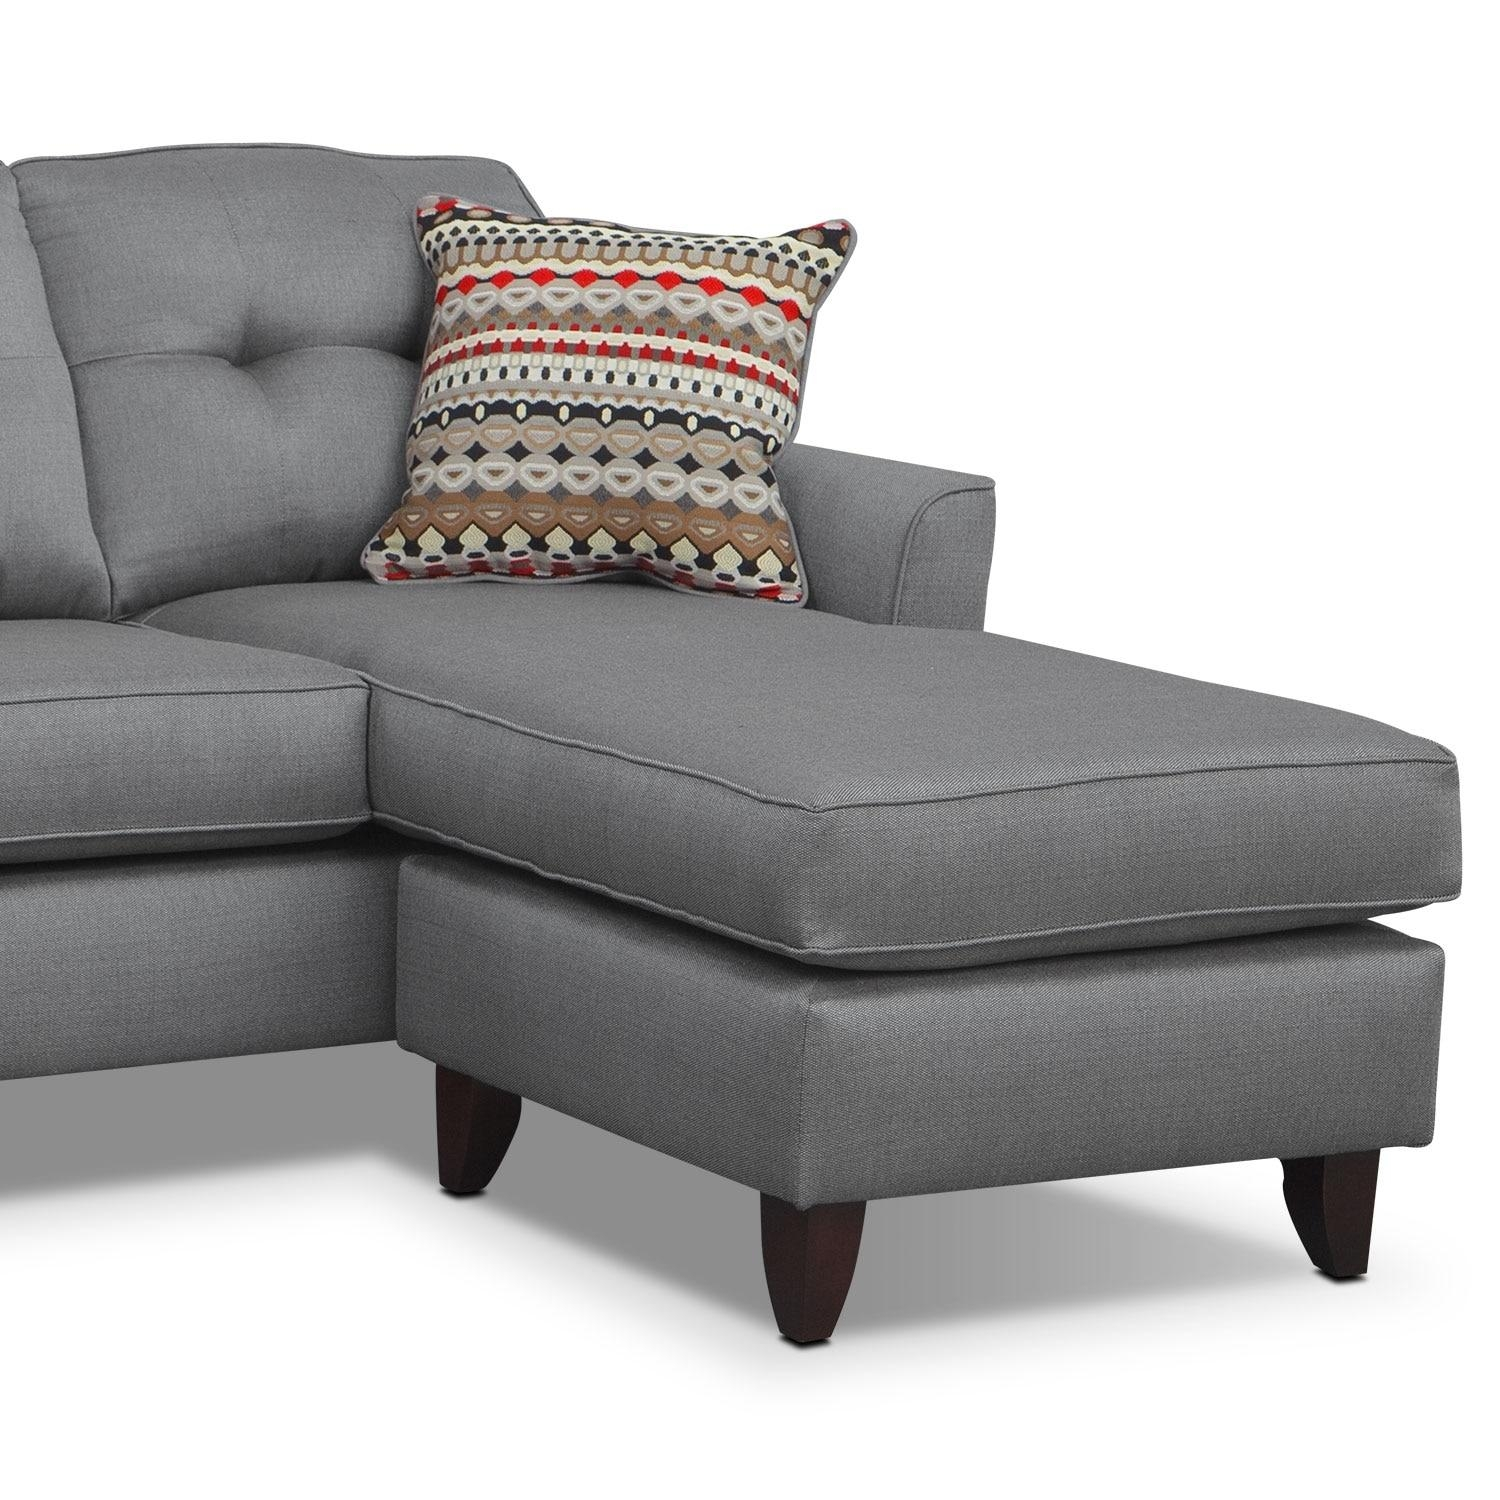 Marco Chaise Sofa – Gray   Value City Furniture Intended For Chaise Sofa Chairs (Image 14 of 20)